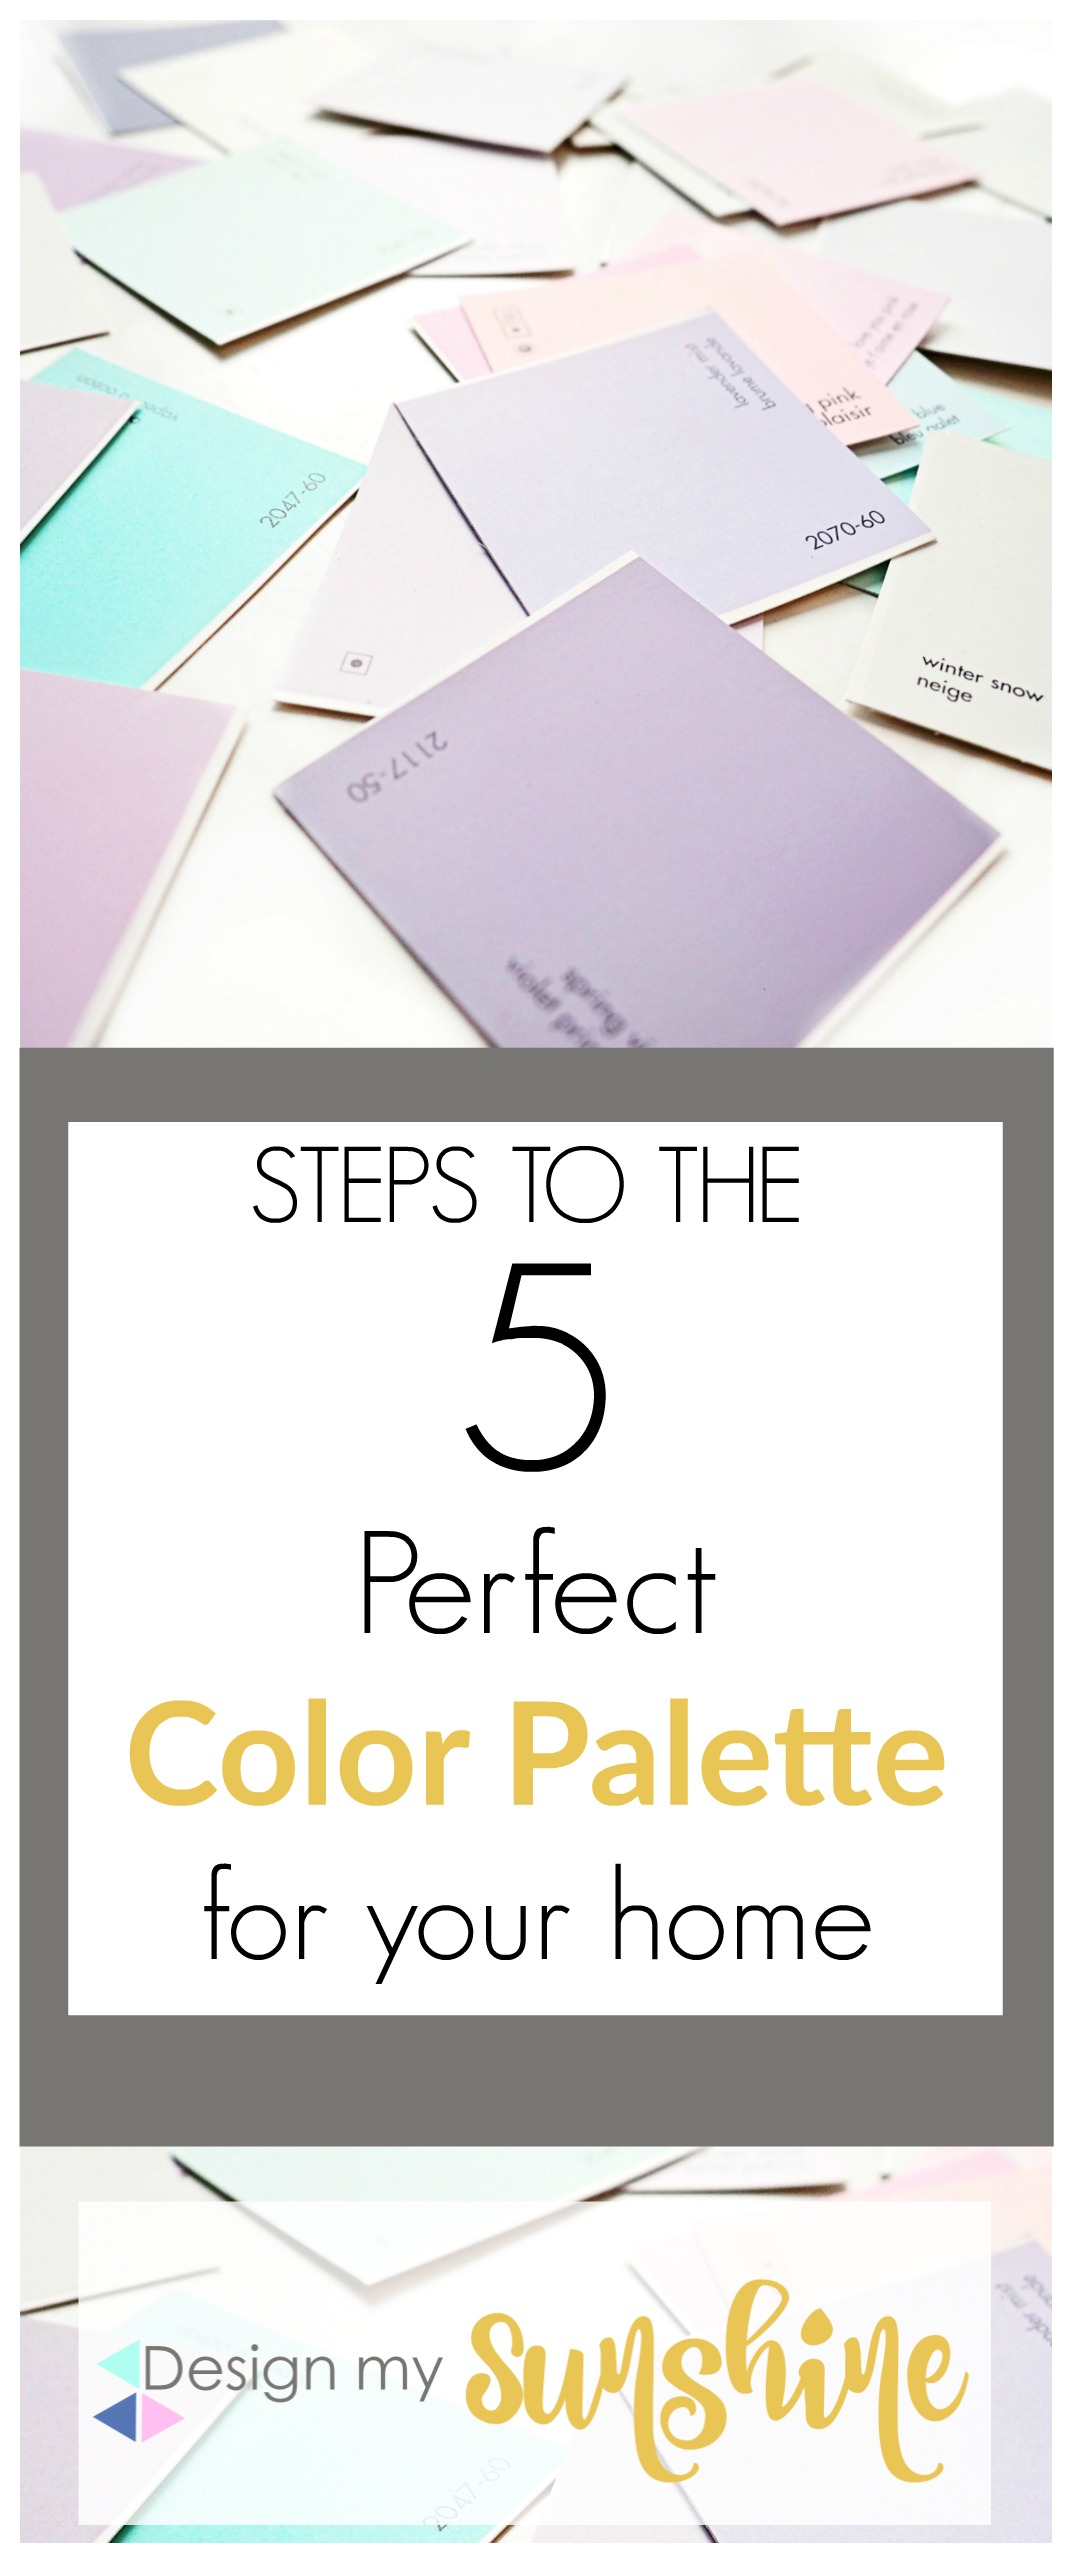 5 Steps to the Perfect Color Palette for your home